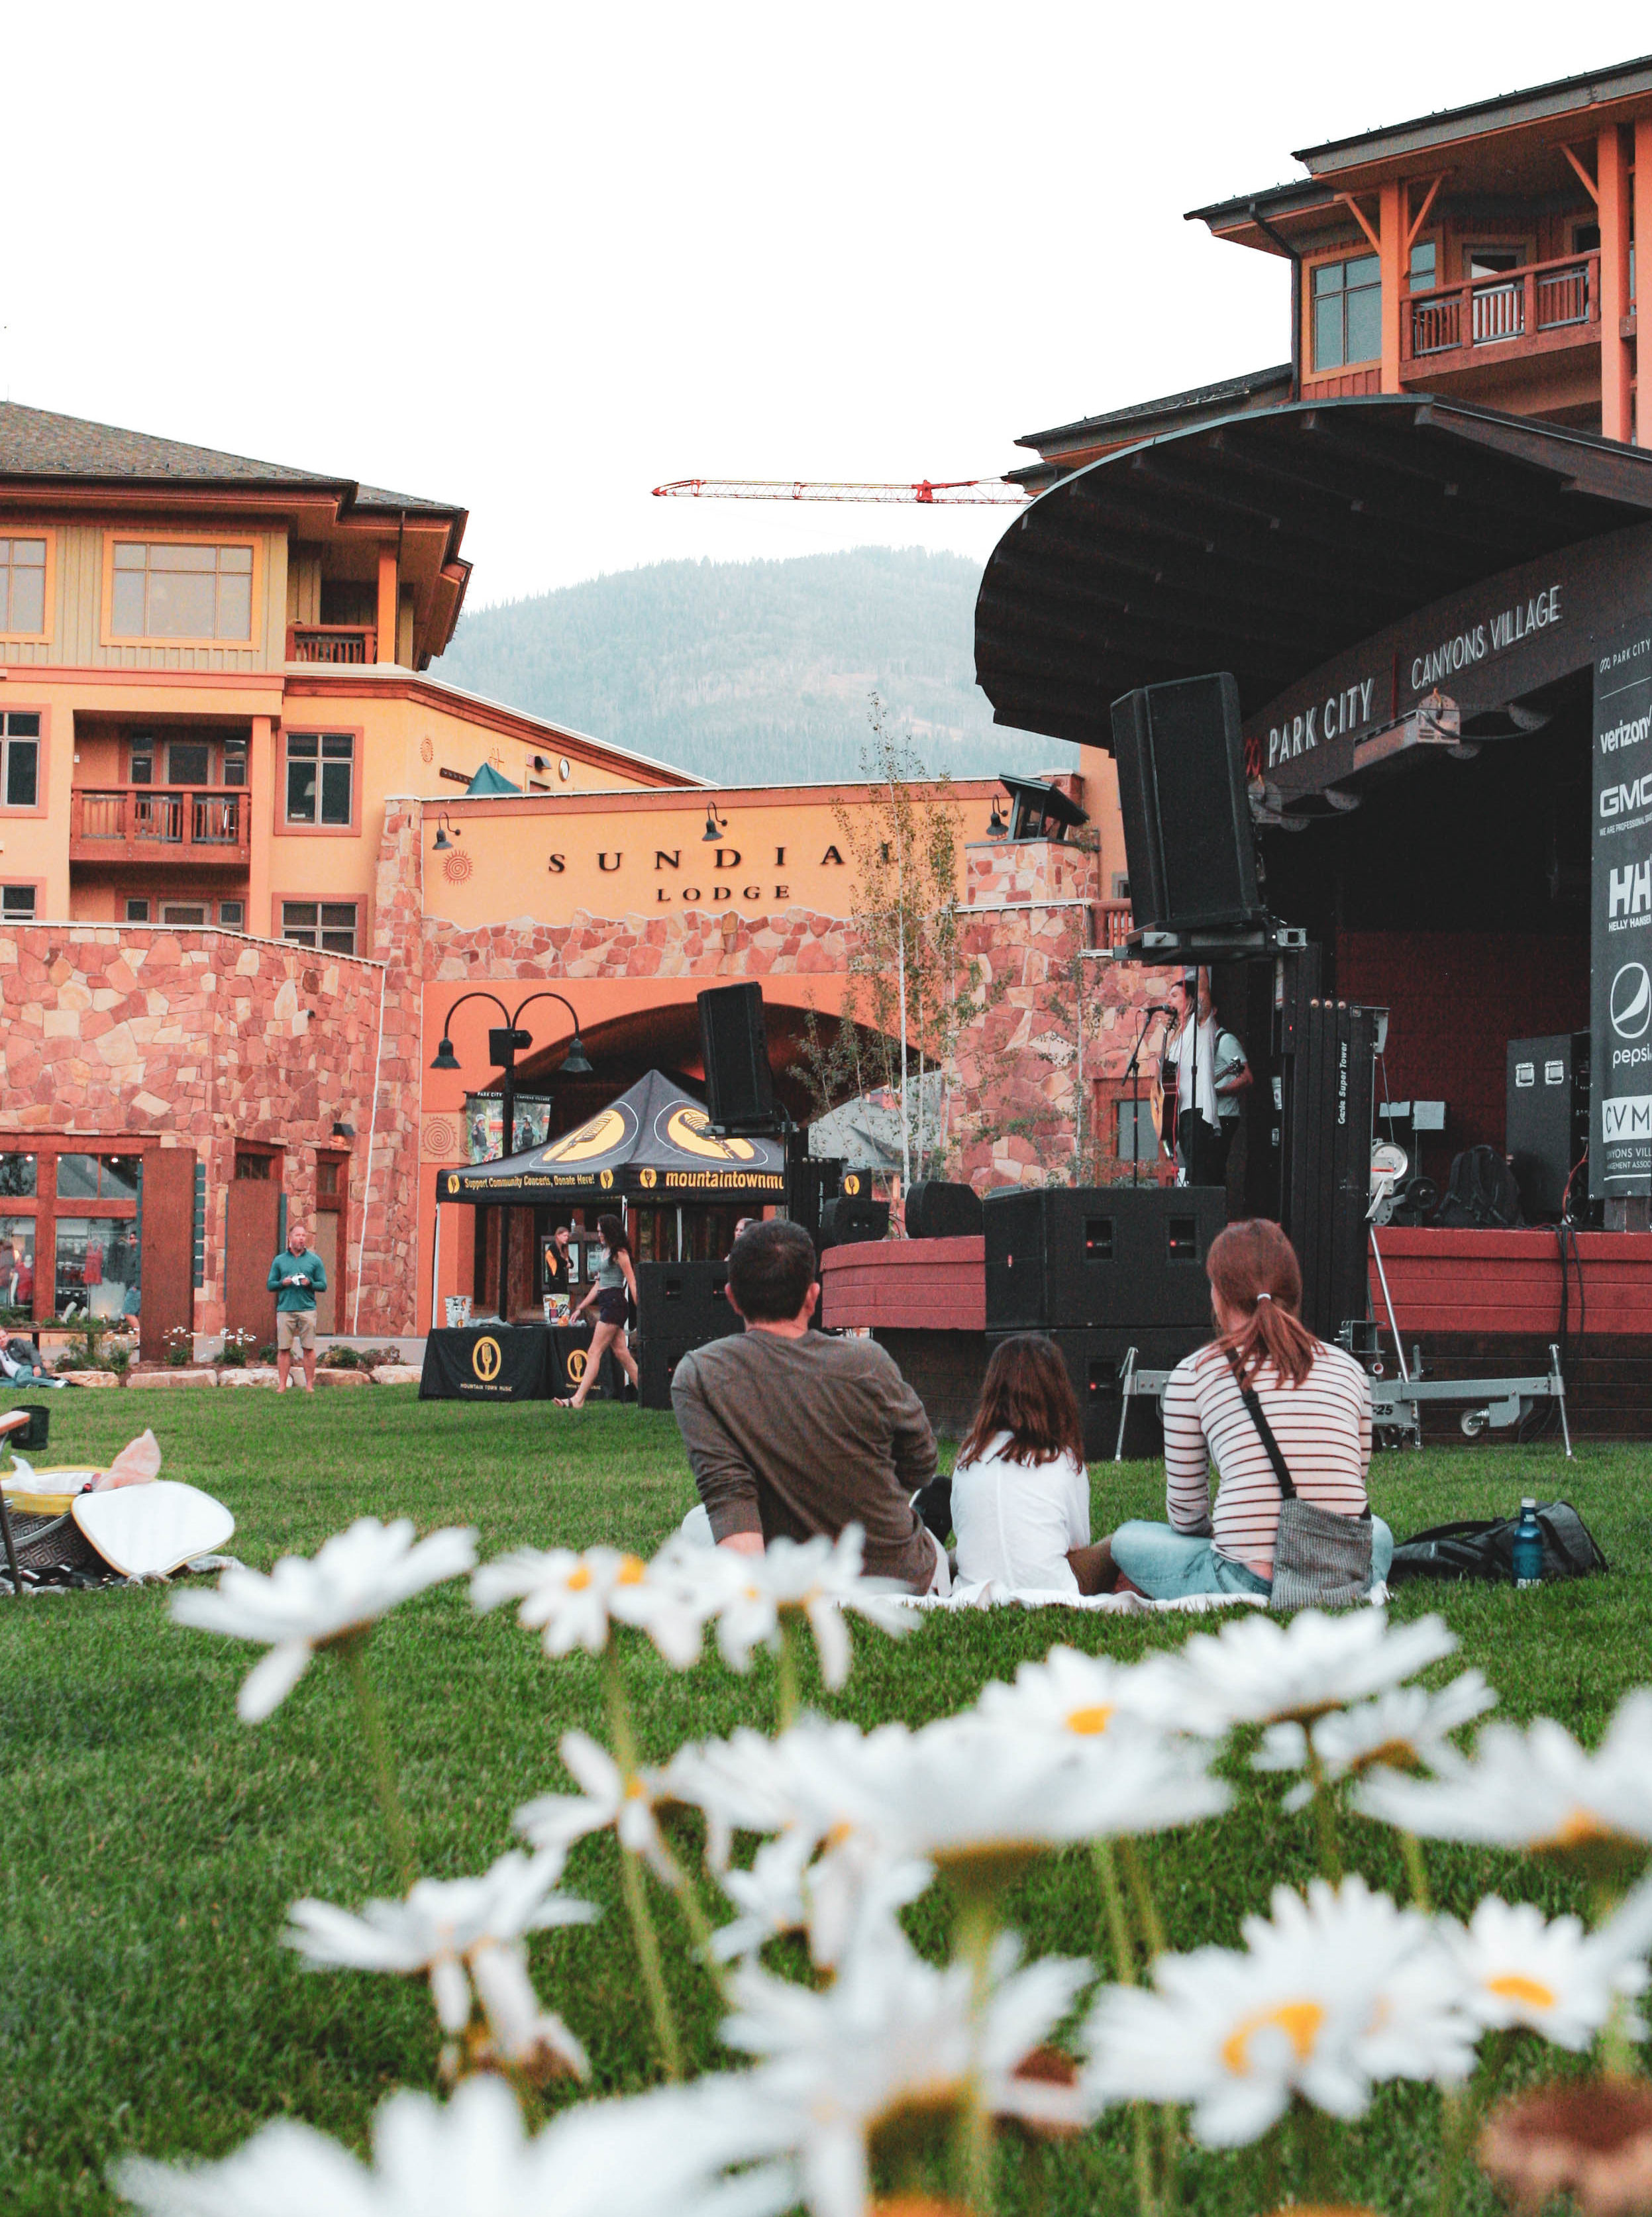 Family Sitting on the Lawn and Enjoying a Summer Outdoor Concert at Sundial Lodge